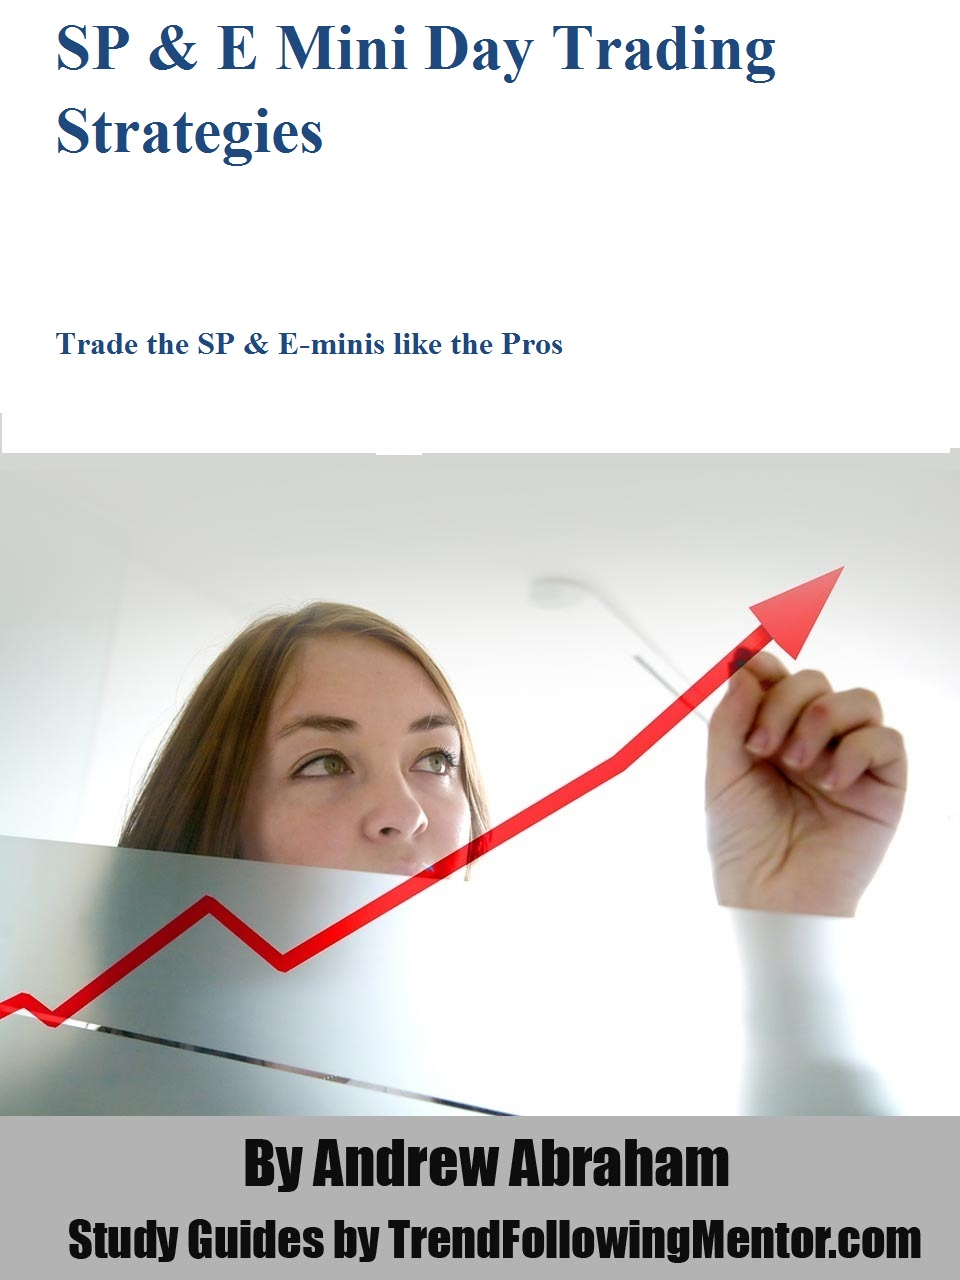 SP Futures and Emini Trading Strategies - Trade the SP Futures & E-minis like the Pros